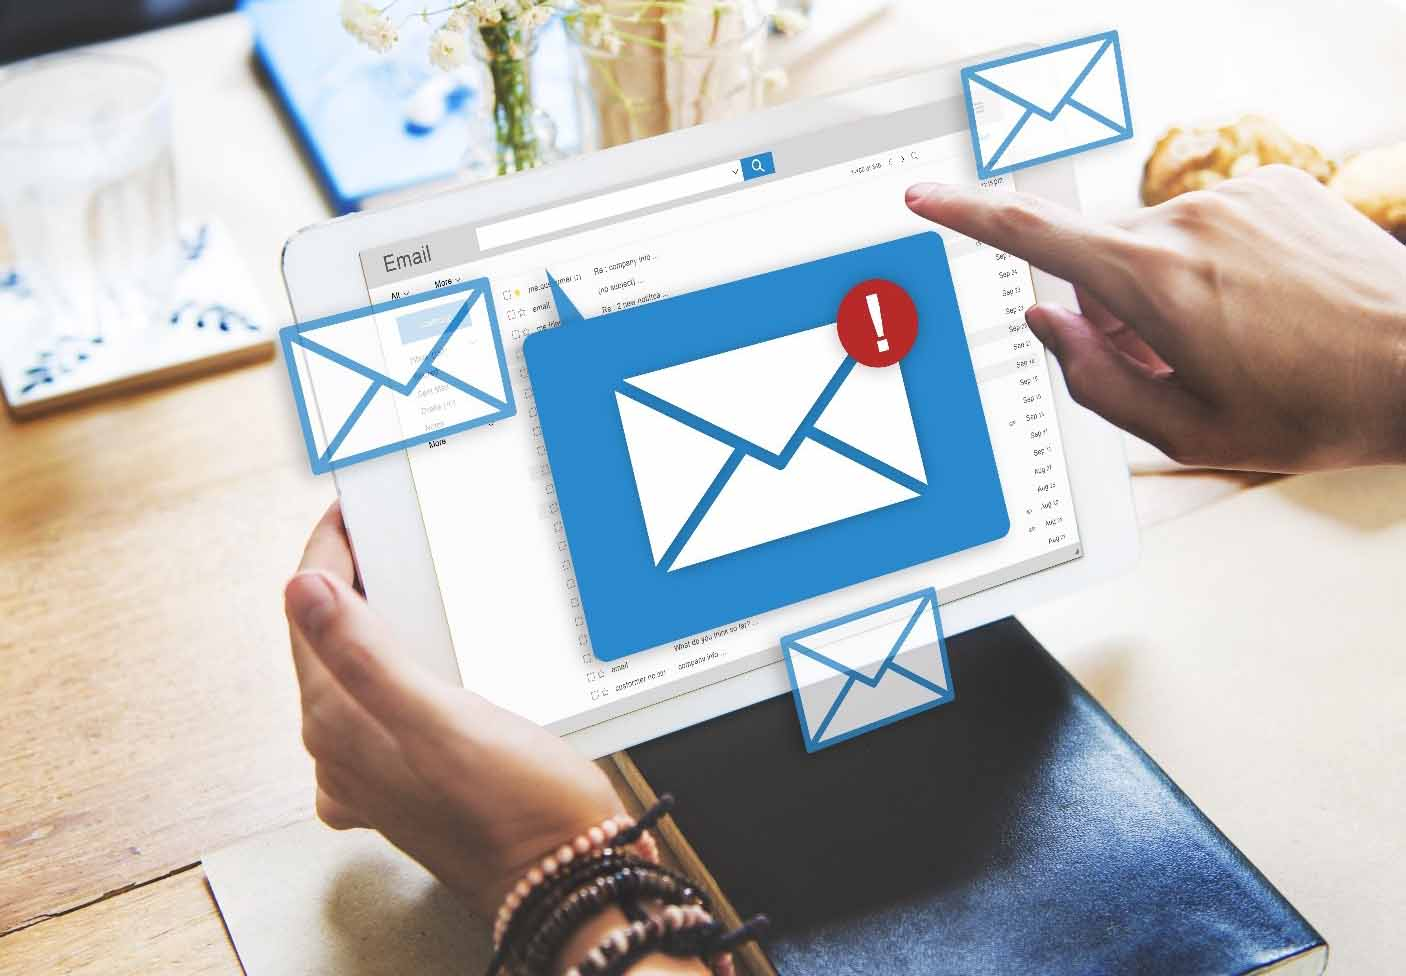 Email Marketing Software for your brand